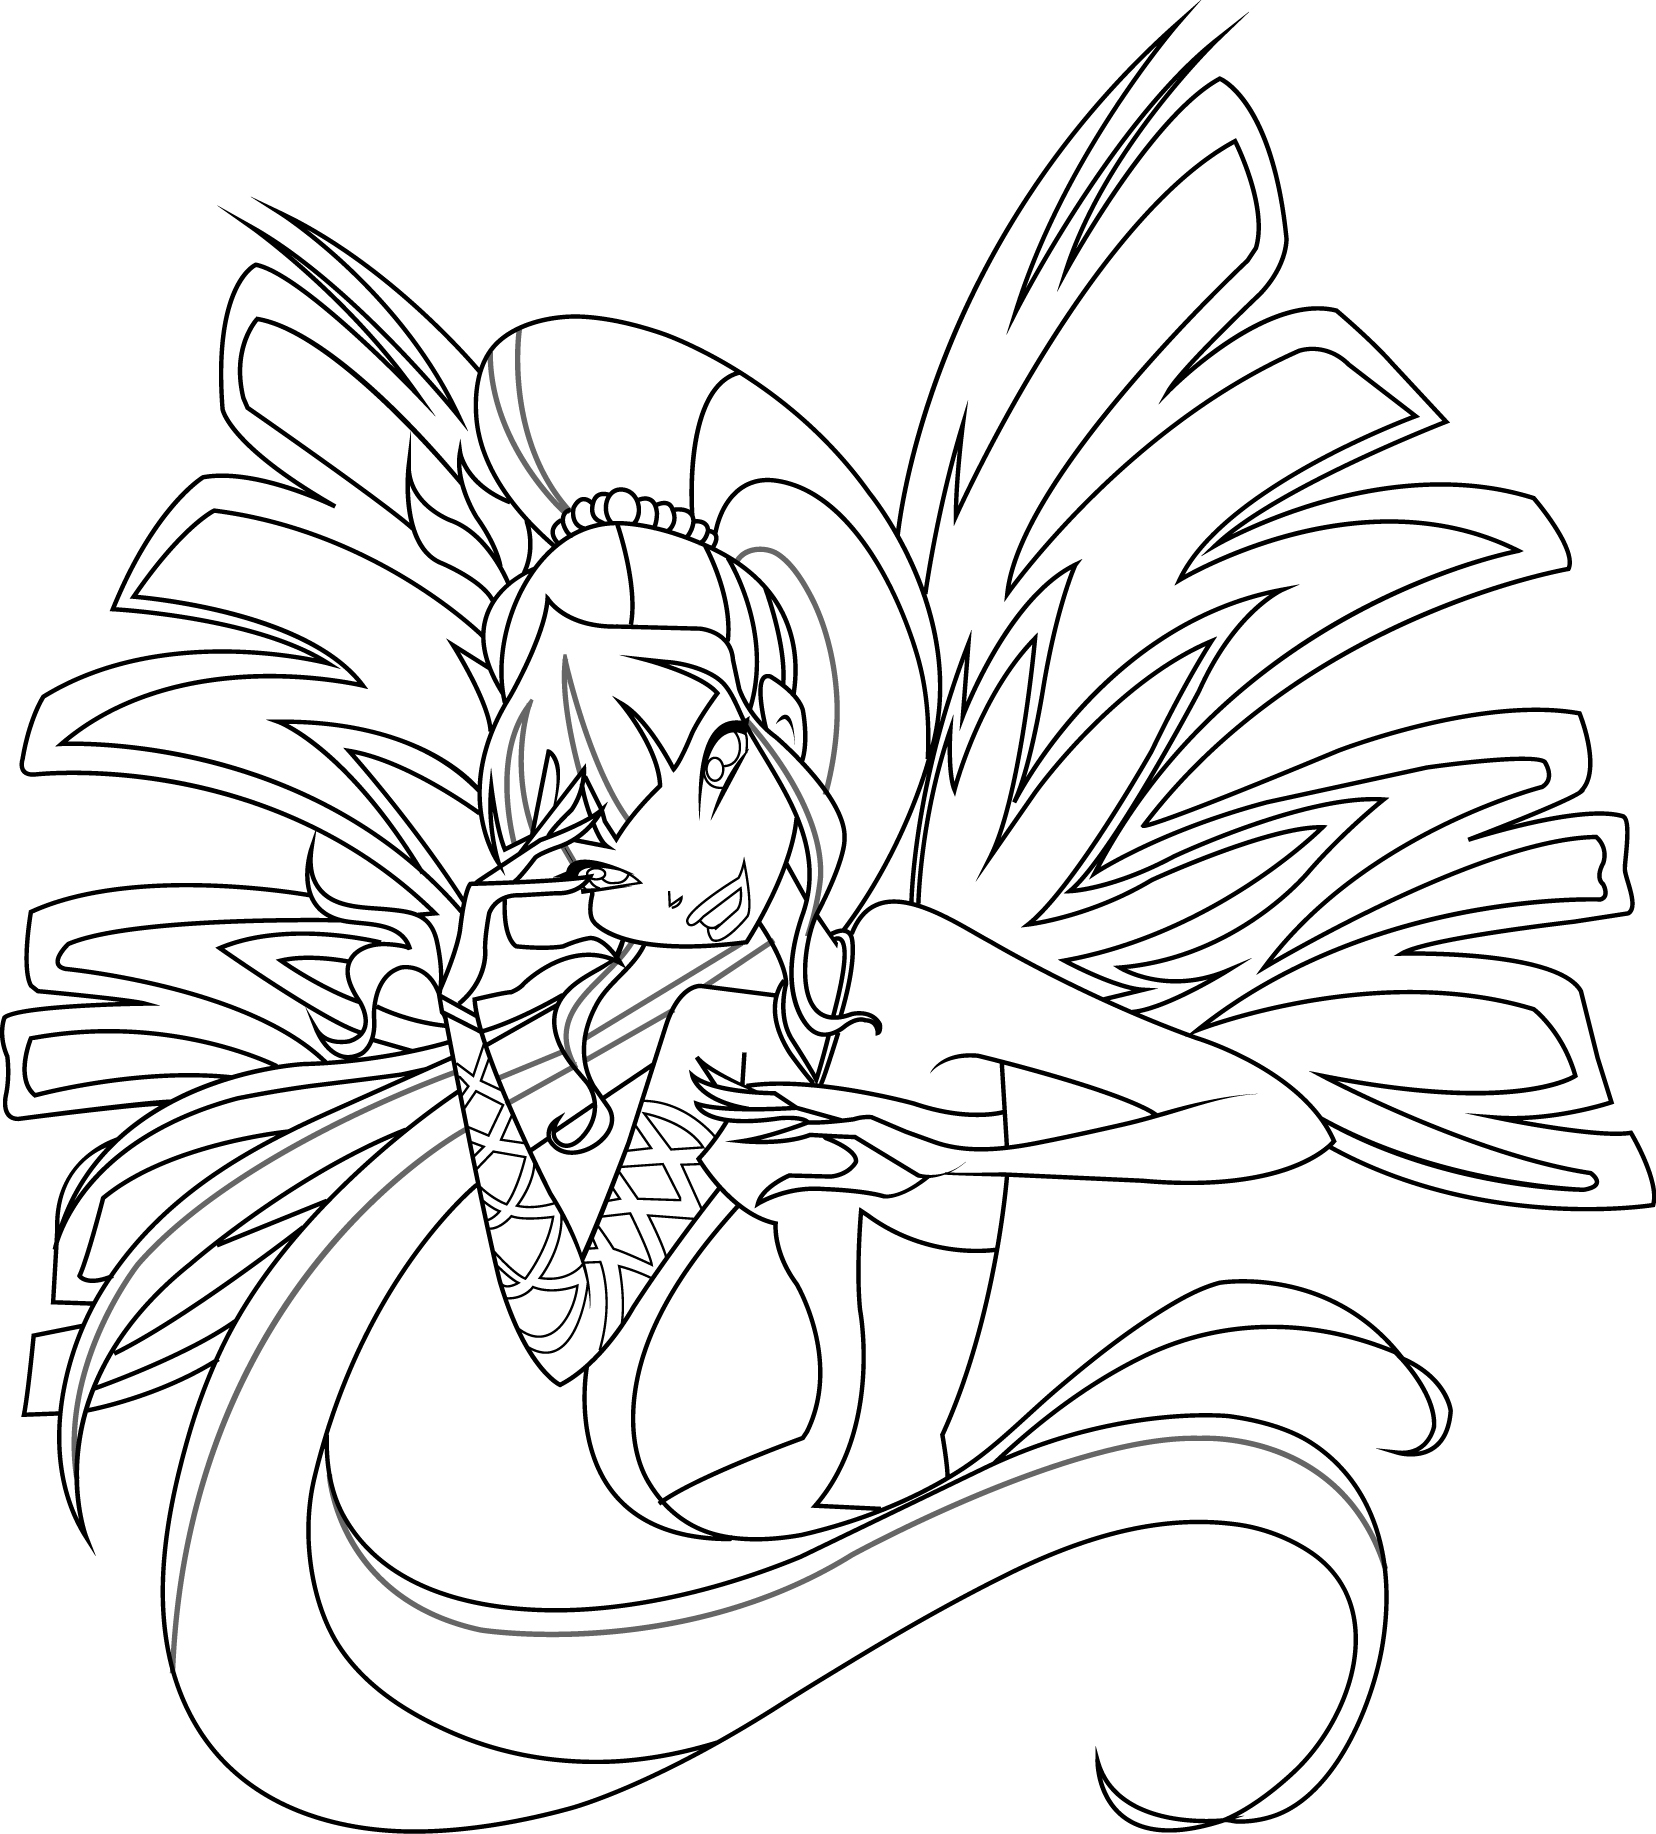 Winx Sirenix coloring pages to